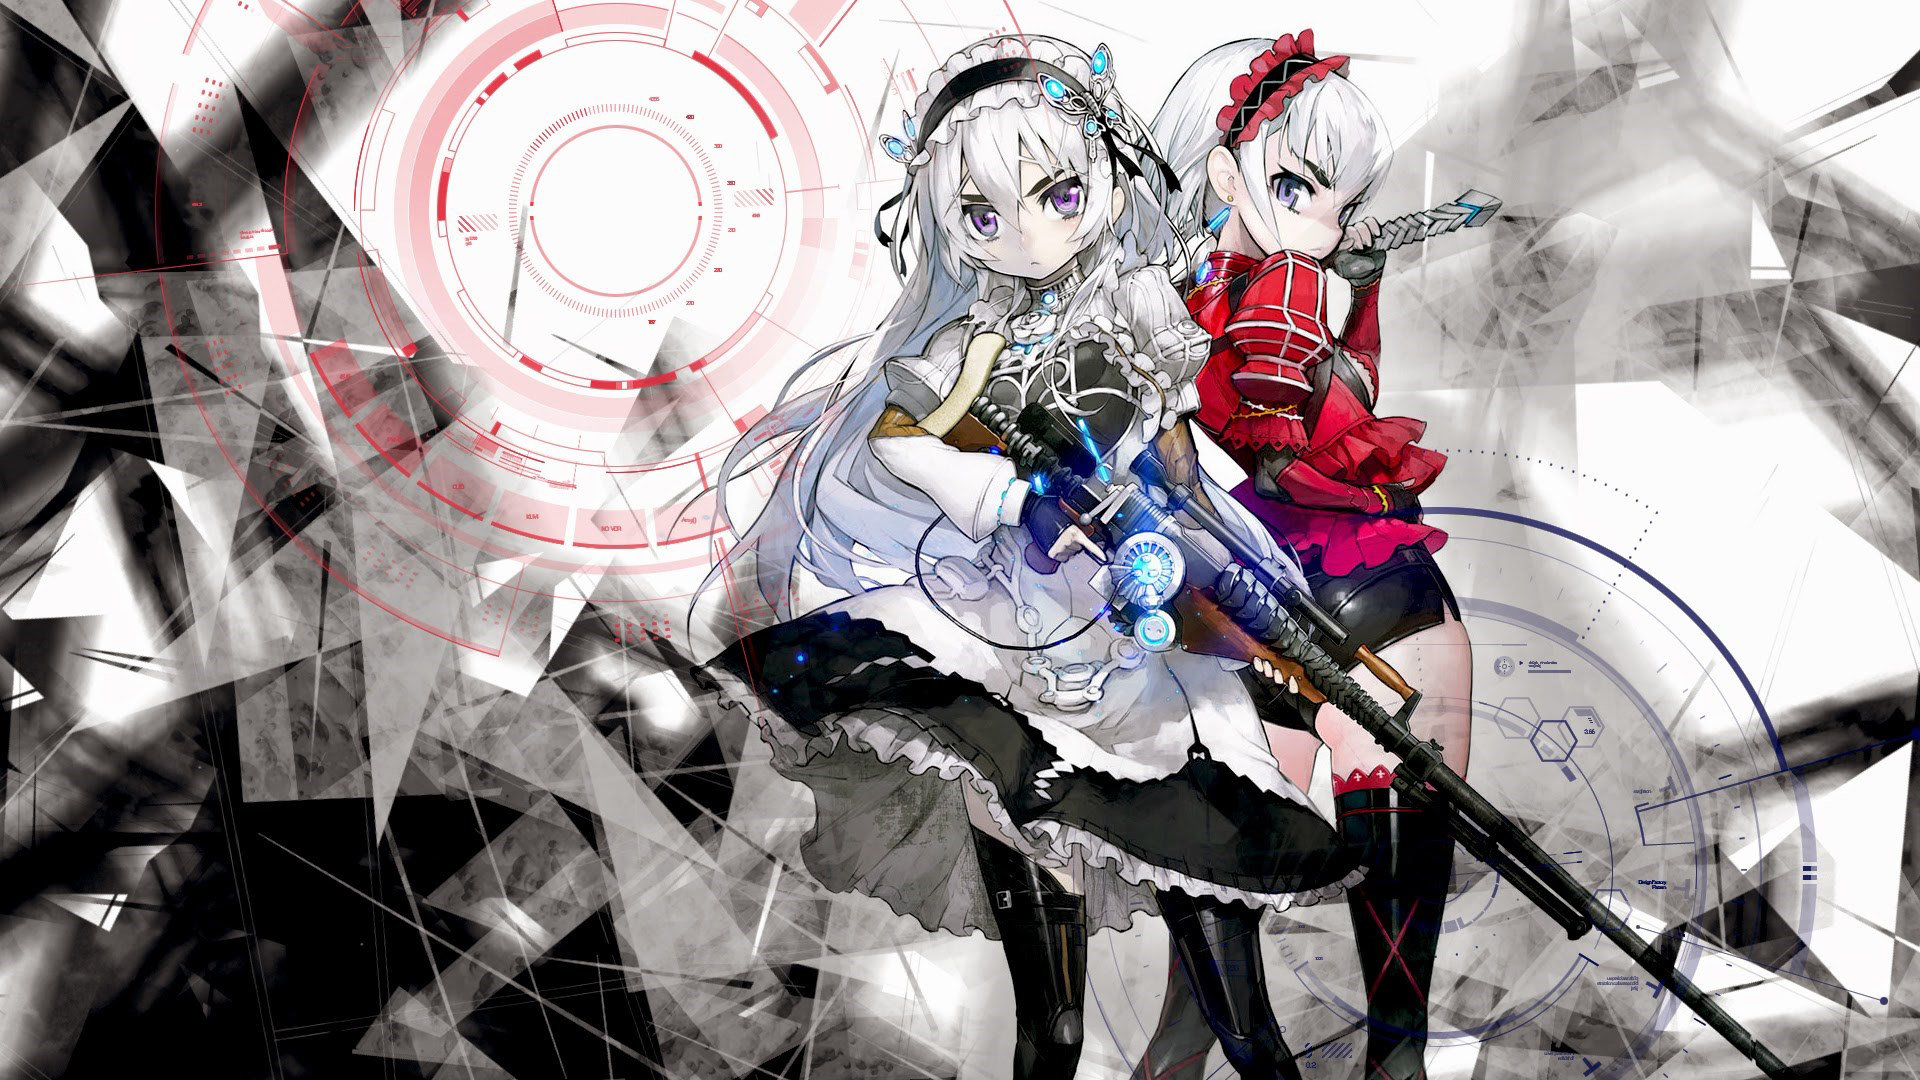 Free download Chaika -The Coffin Princess- wallpaper ID:49261 full hd for desktop